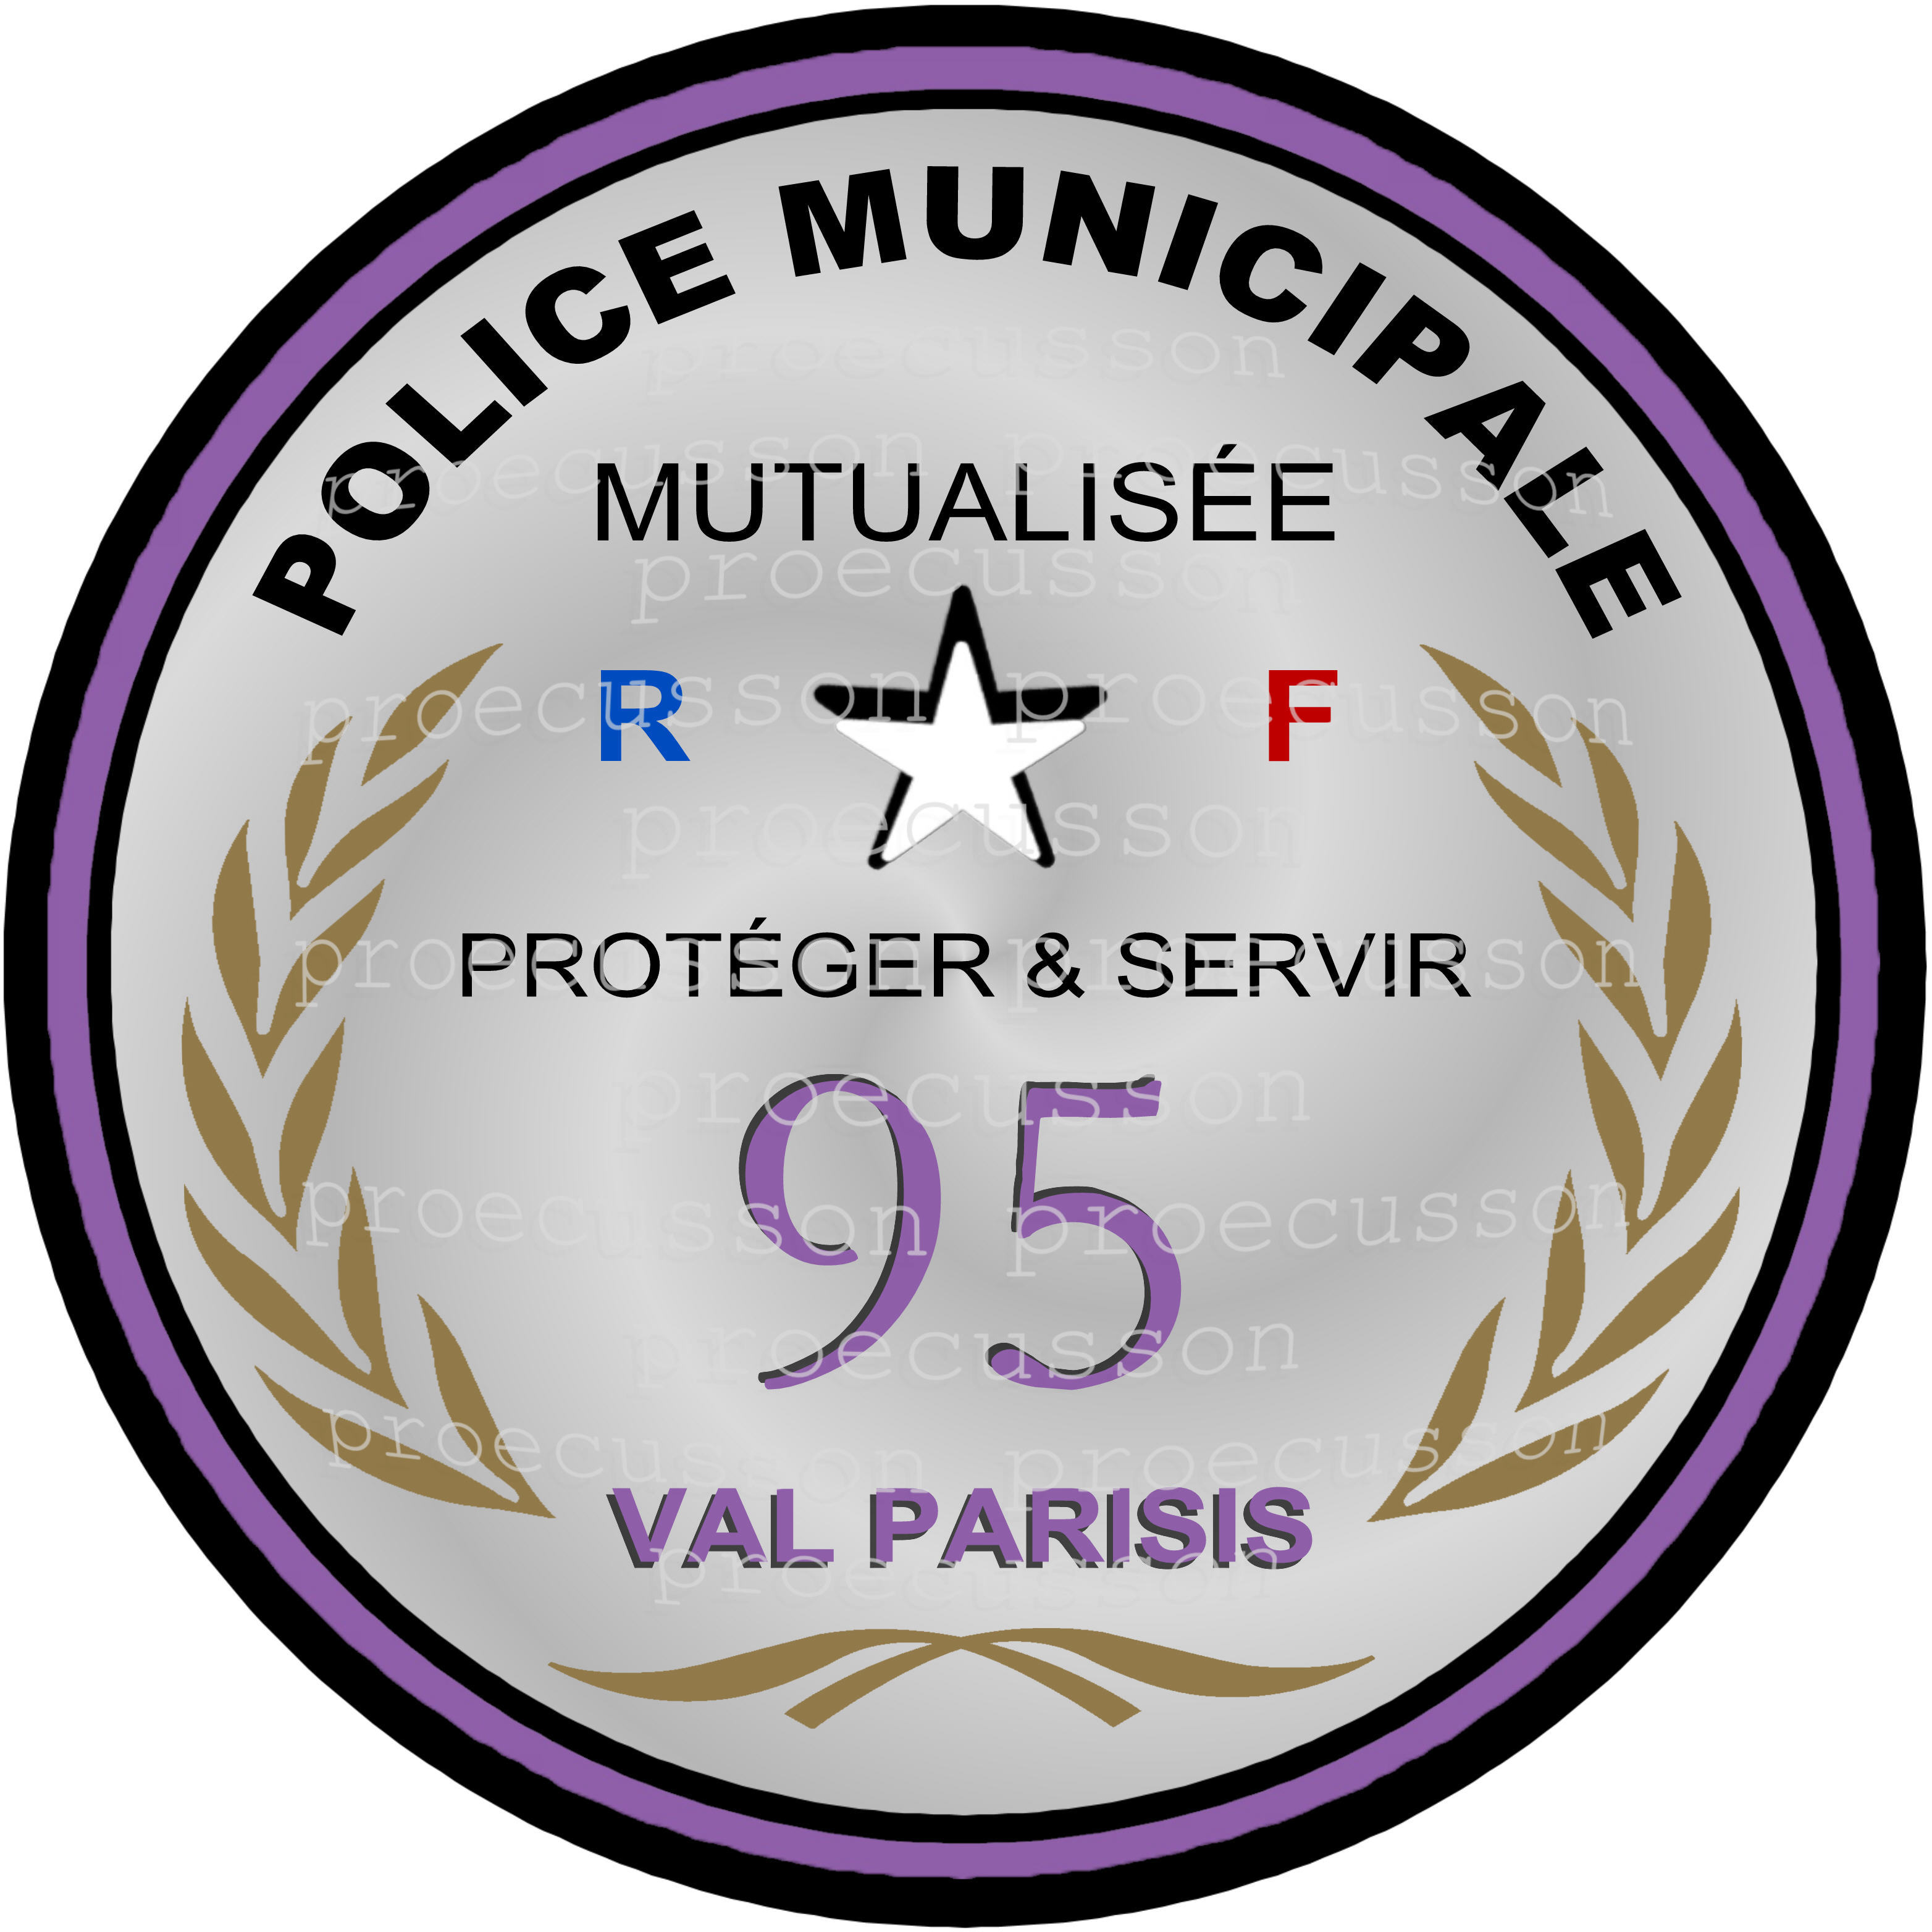 POLICE MUNICIPALE INTERCOMMUNALE VAL PARISIS